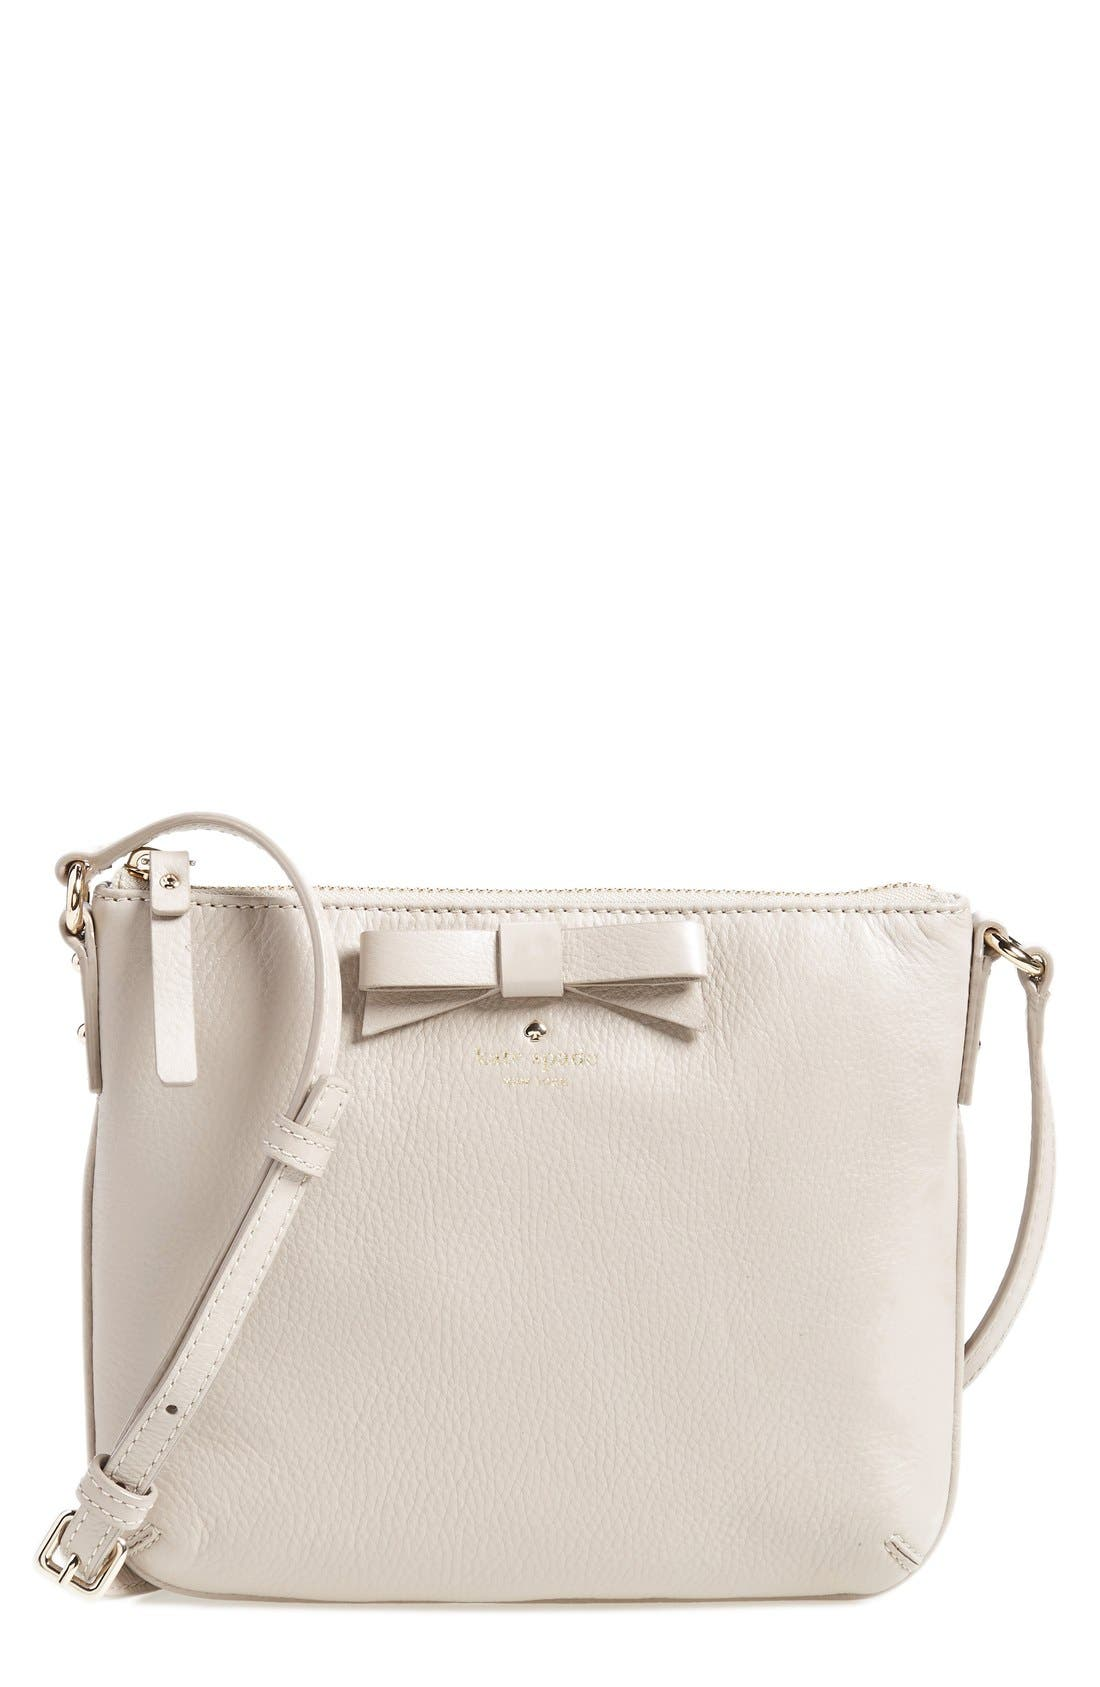 Main Image - kate spade new york 'north court - bow tenley' pebbled leather crossbody bag (Nordstrom Exclusive)